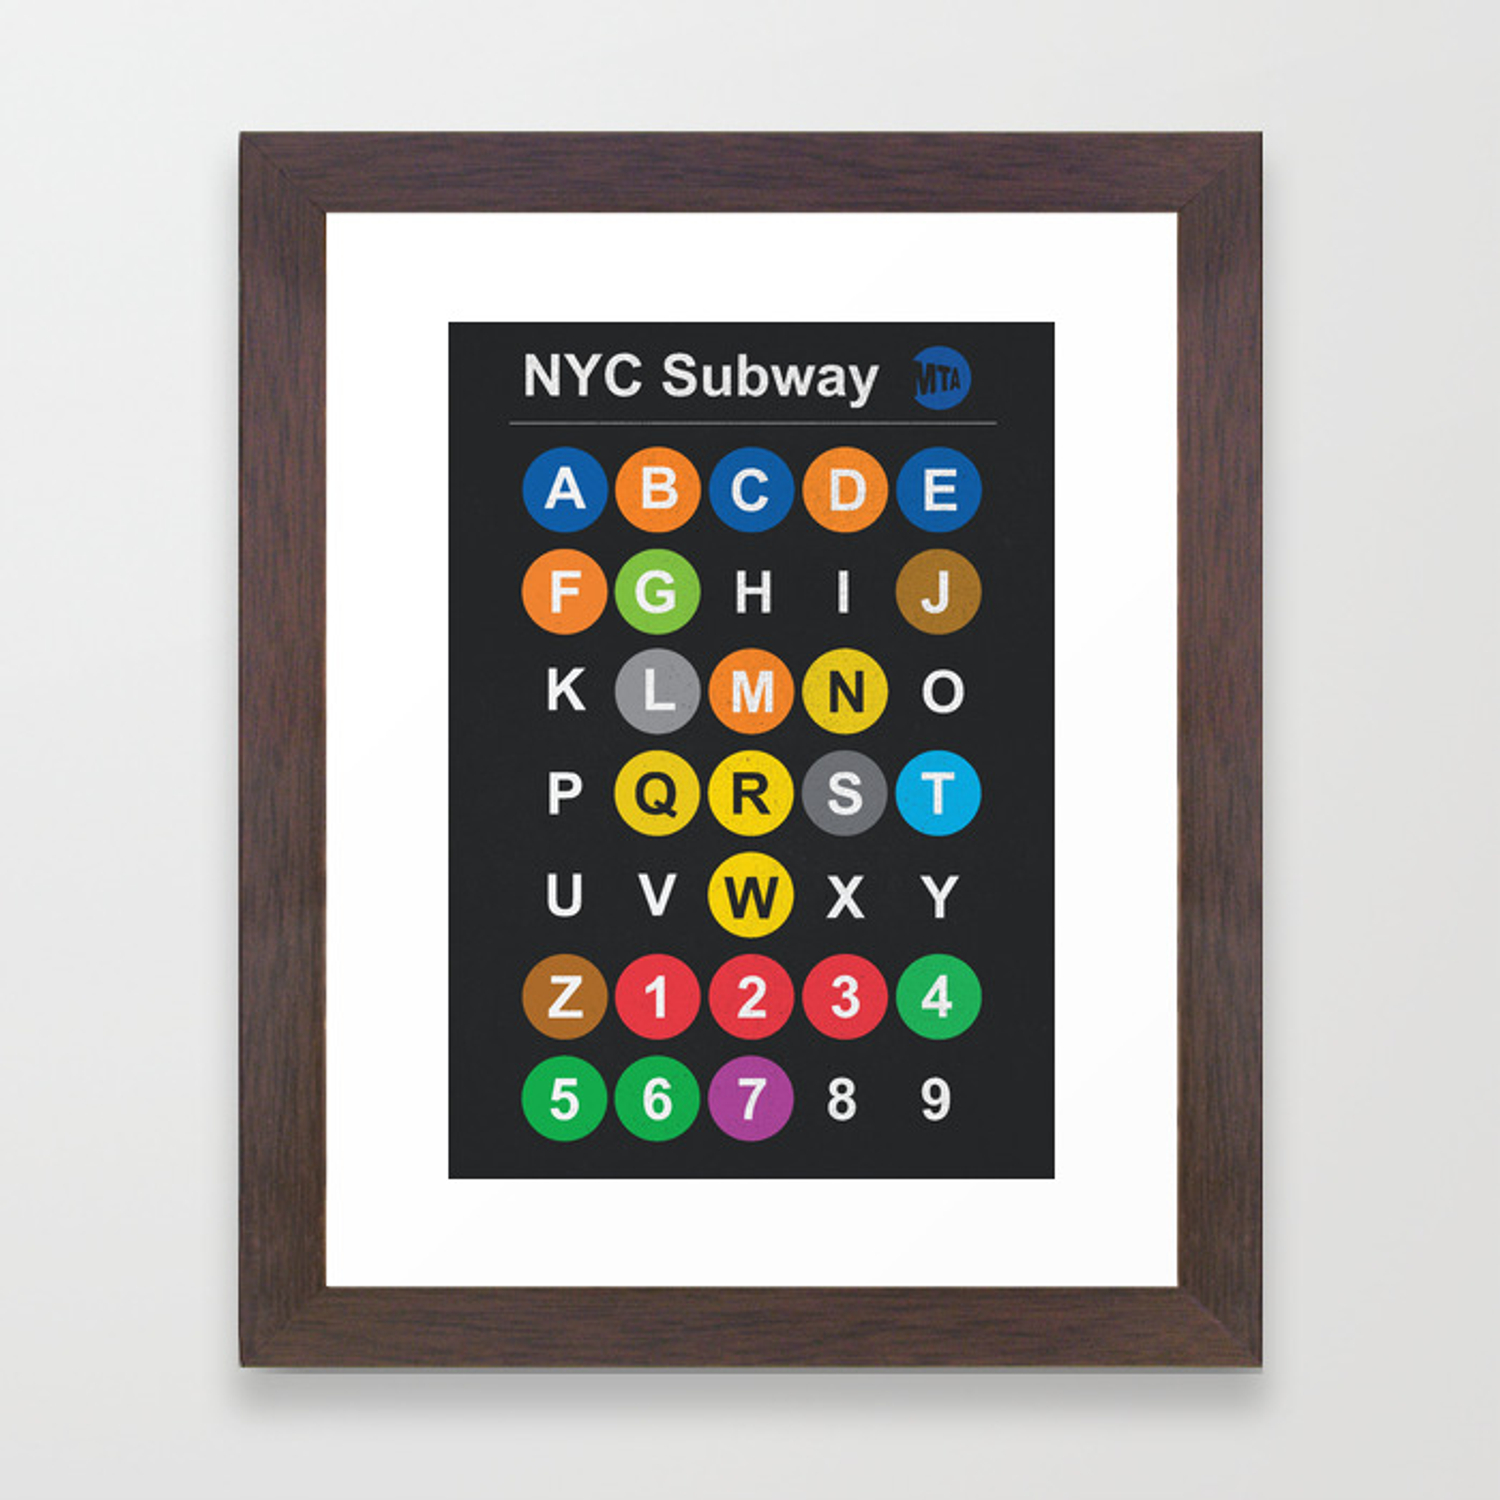 Framed New York Subway Map.New York City Subway Alphabet Map Nyc Lettering Illustration Dark Version Usa Typography Framed Art Print